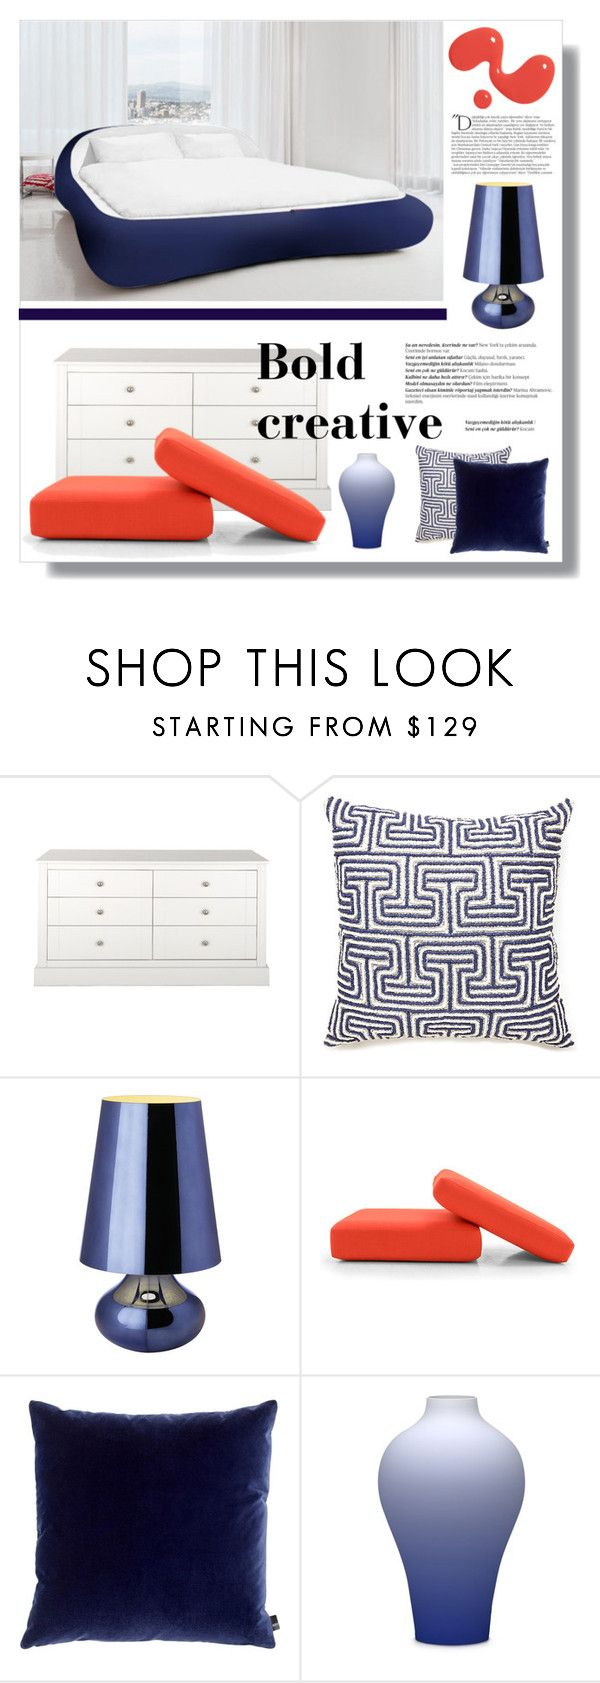 """the bold creative"" by mariarty ❤ liked on Polyvore featuring interior, interiors, interior design, home, home decor, interior decorating, Jonathan Adler, Kartell, Balmain and Joybird Furniture"